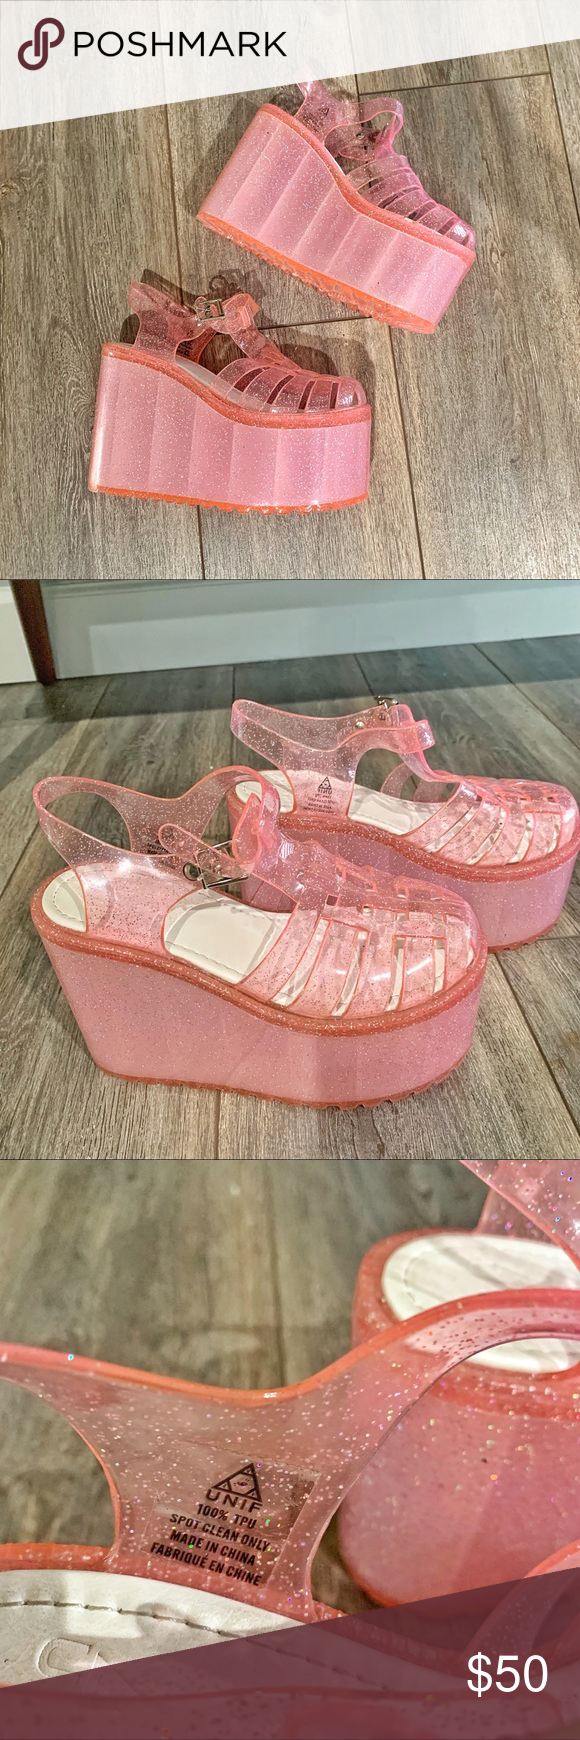 ade534466624 UNIF Hella Jelly Pink Glitter Platforms Platforms used only once for a  special occasion. In